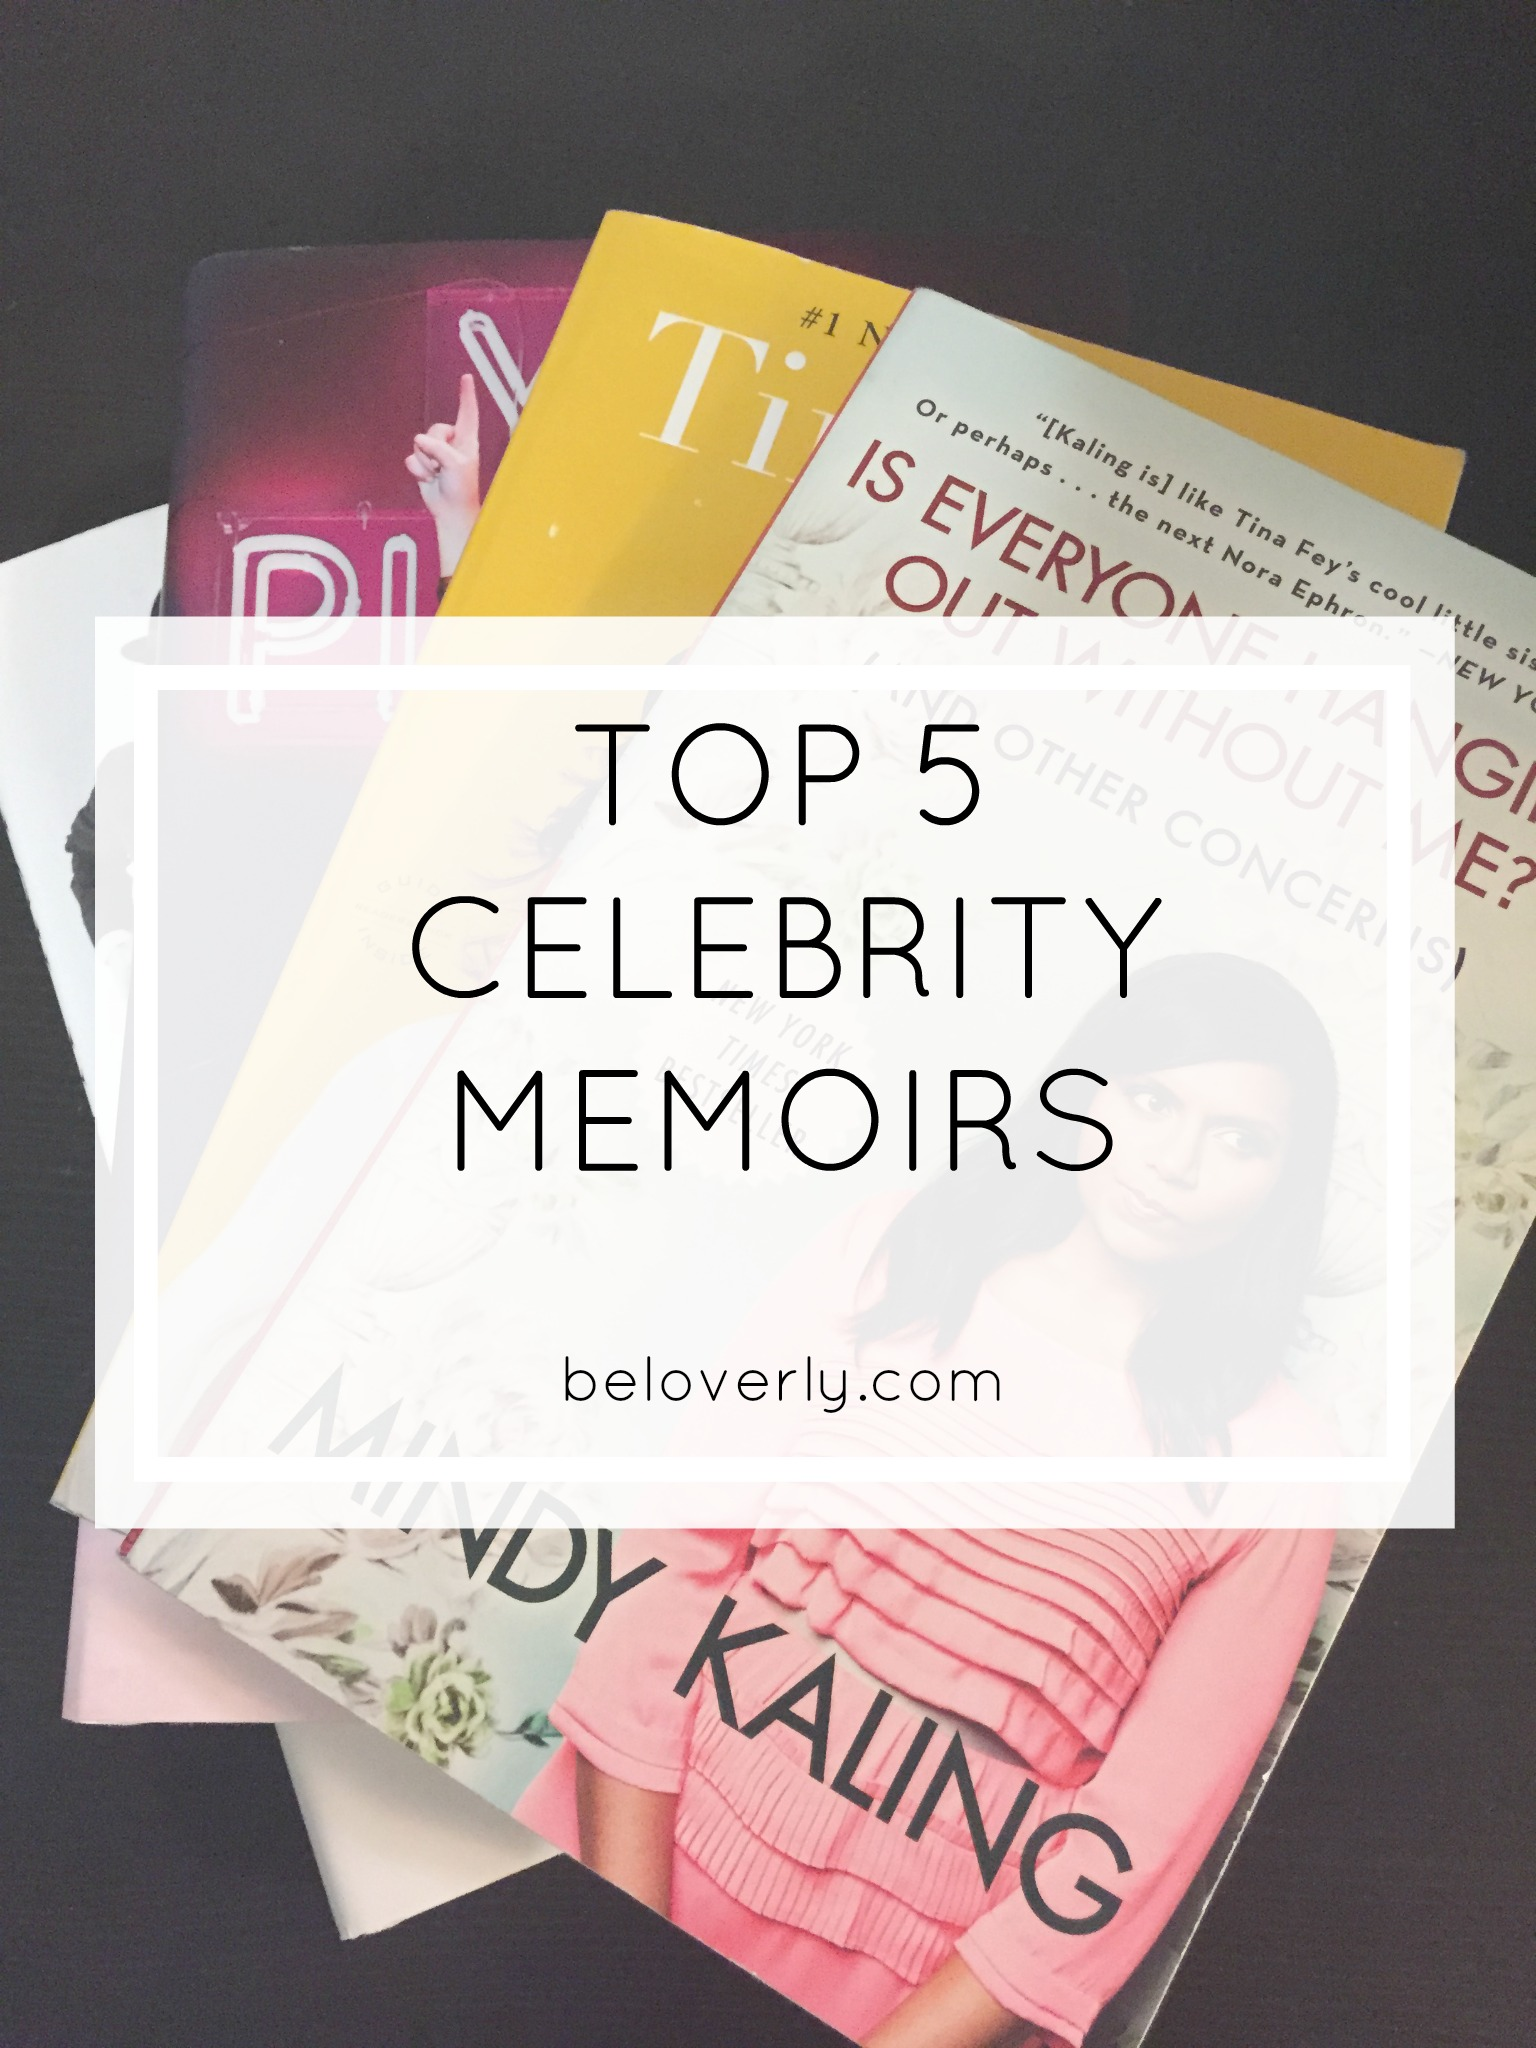 beloverlyreads_top5celebritymemoirs2